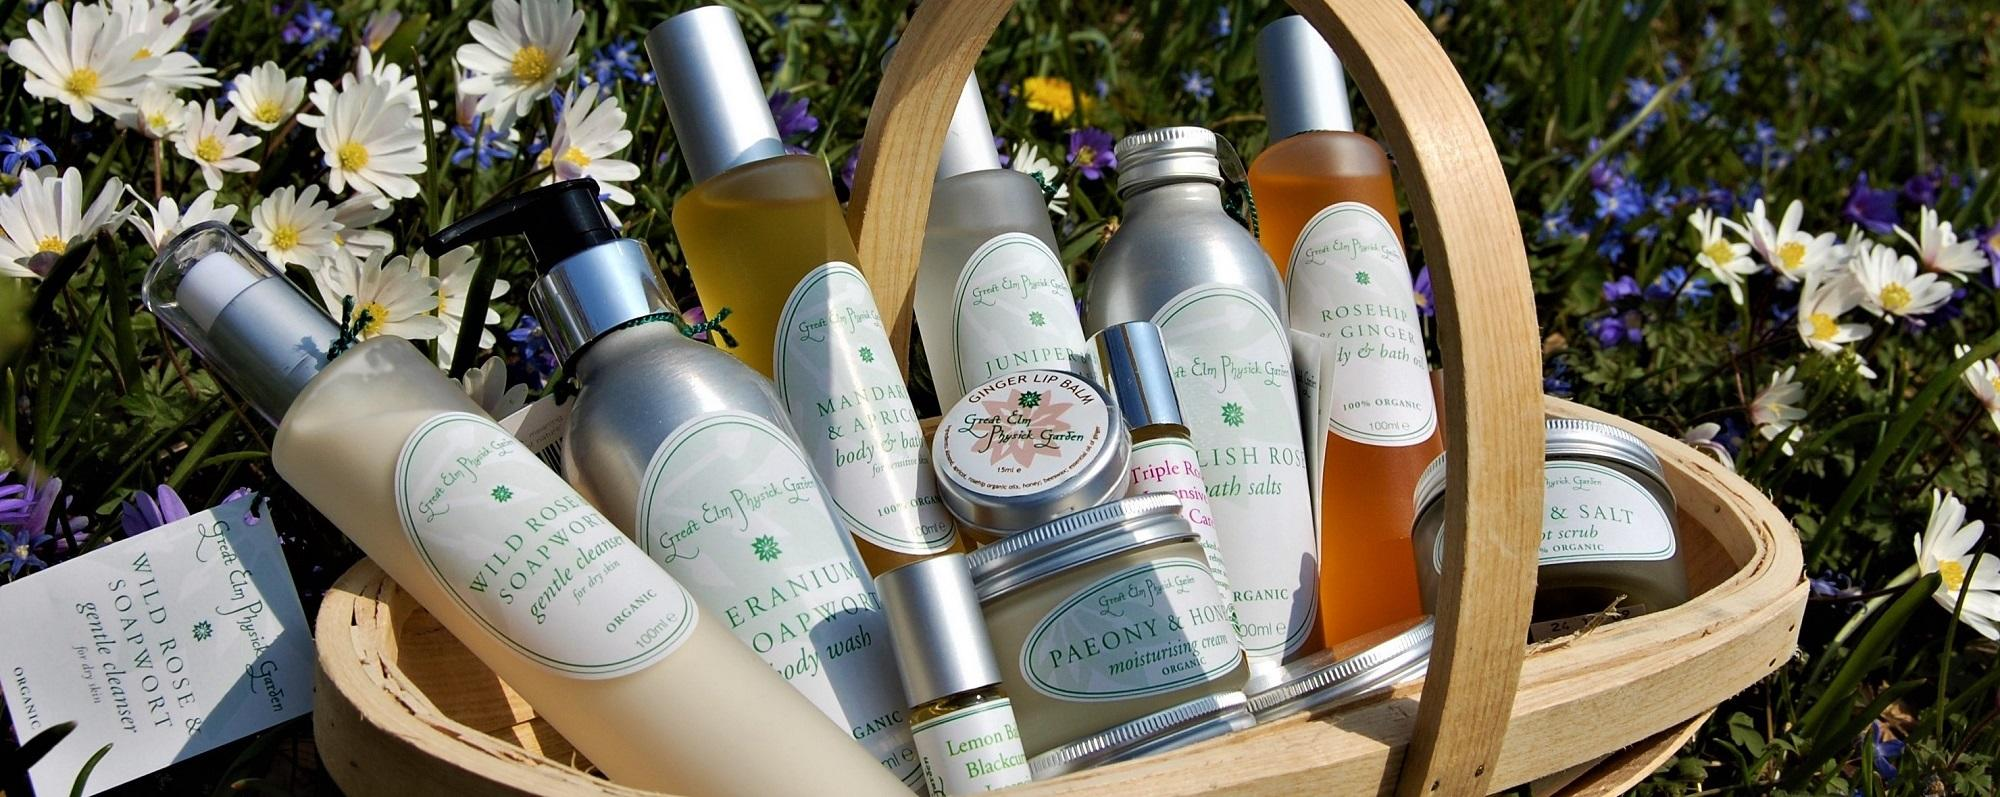 Great Elm Physick Garden organic herbal skincare. Beautifully simple. COVID 19: OUR ONLINE SHOP IS OPEN